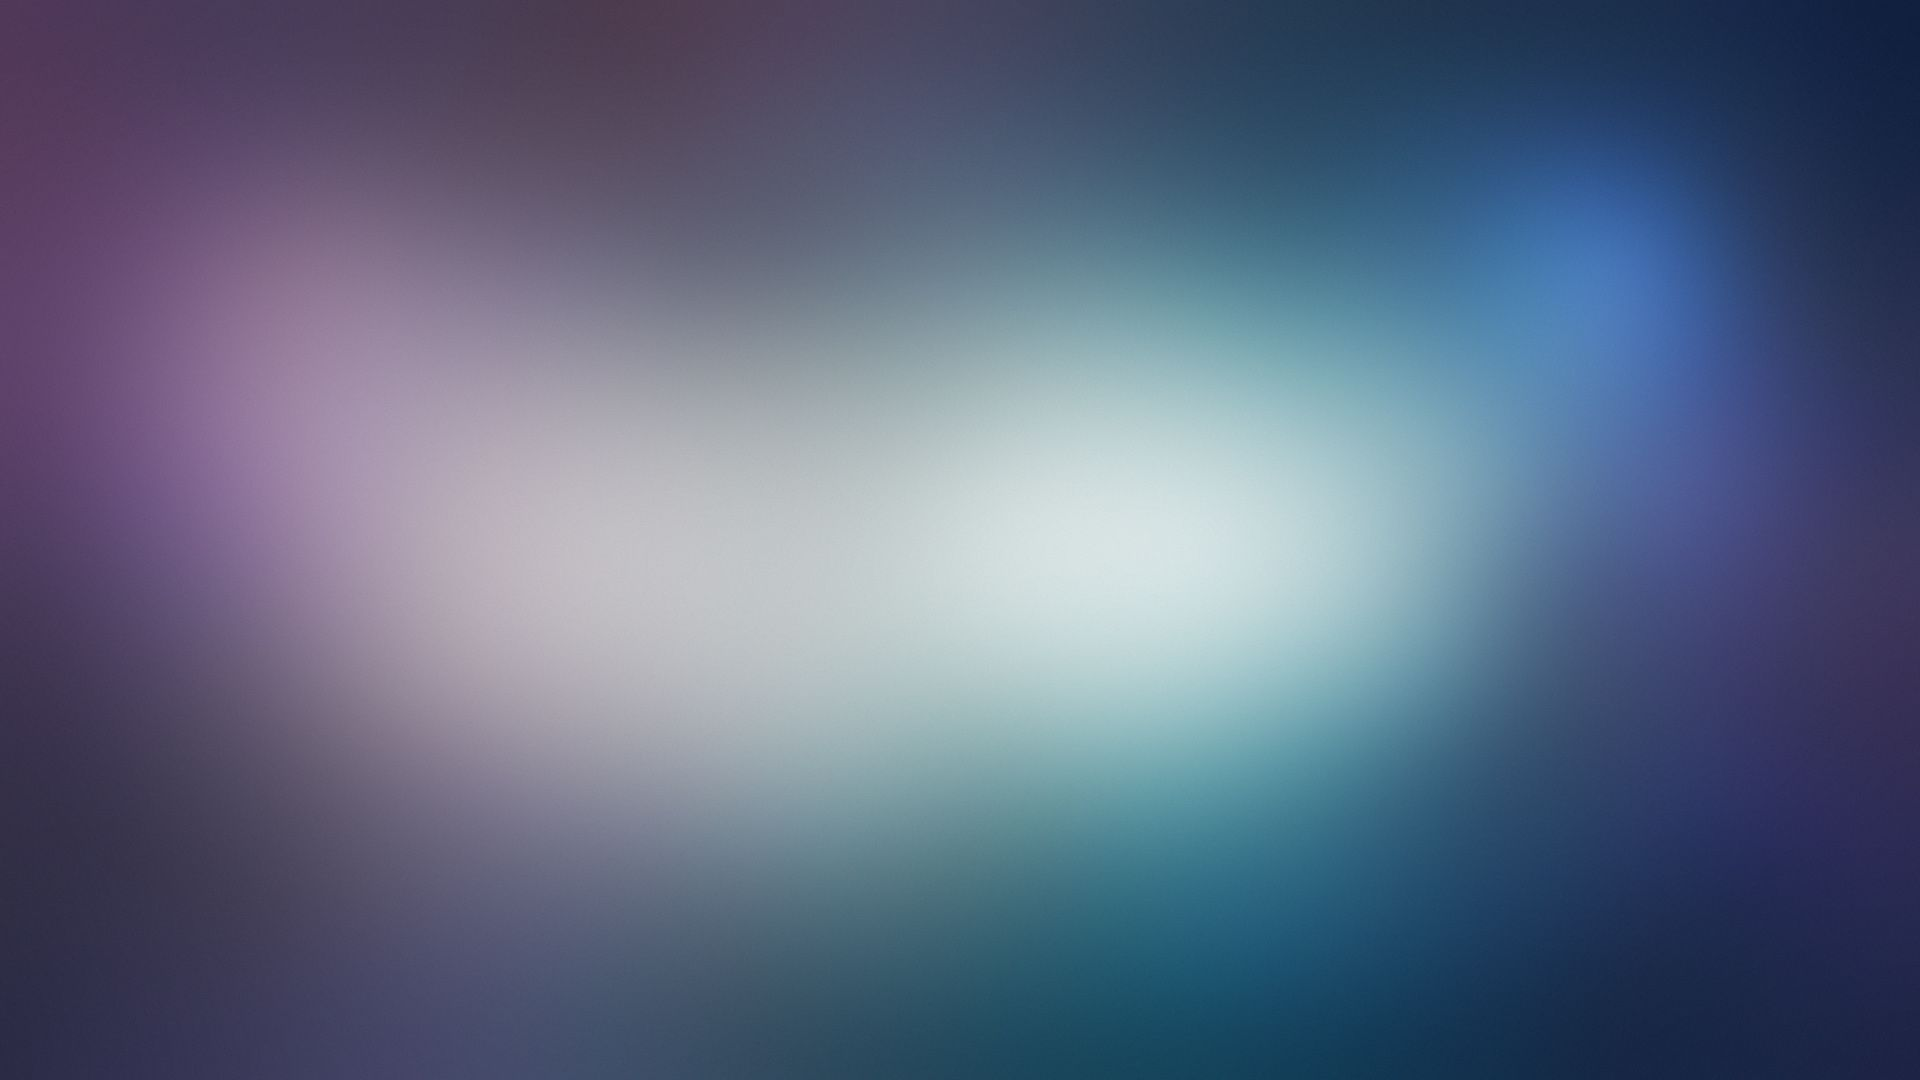 Blur Wallpapers HD